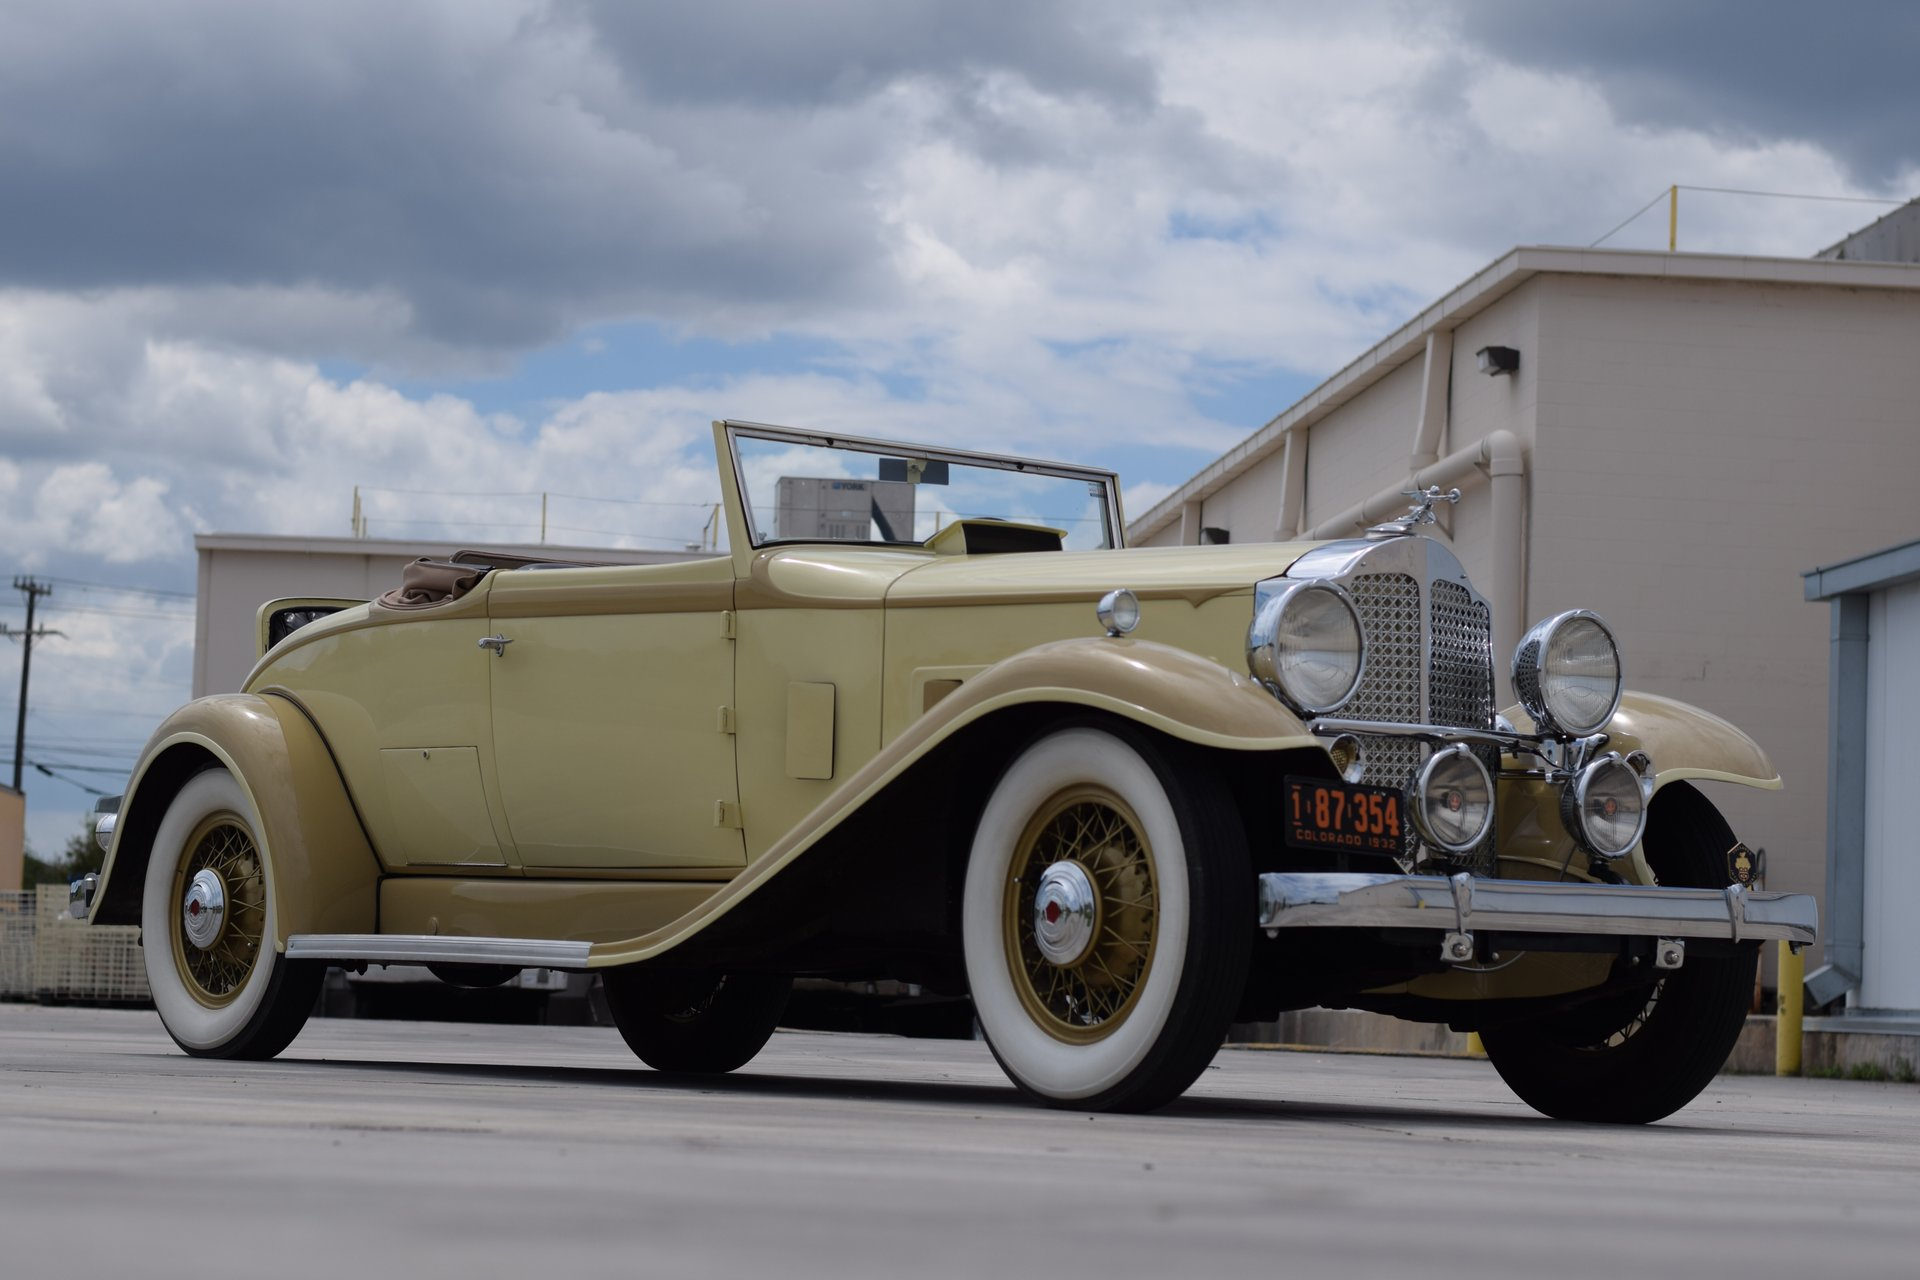 1932 packard model 902 9th series